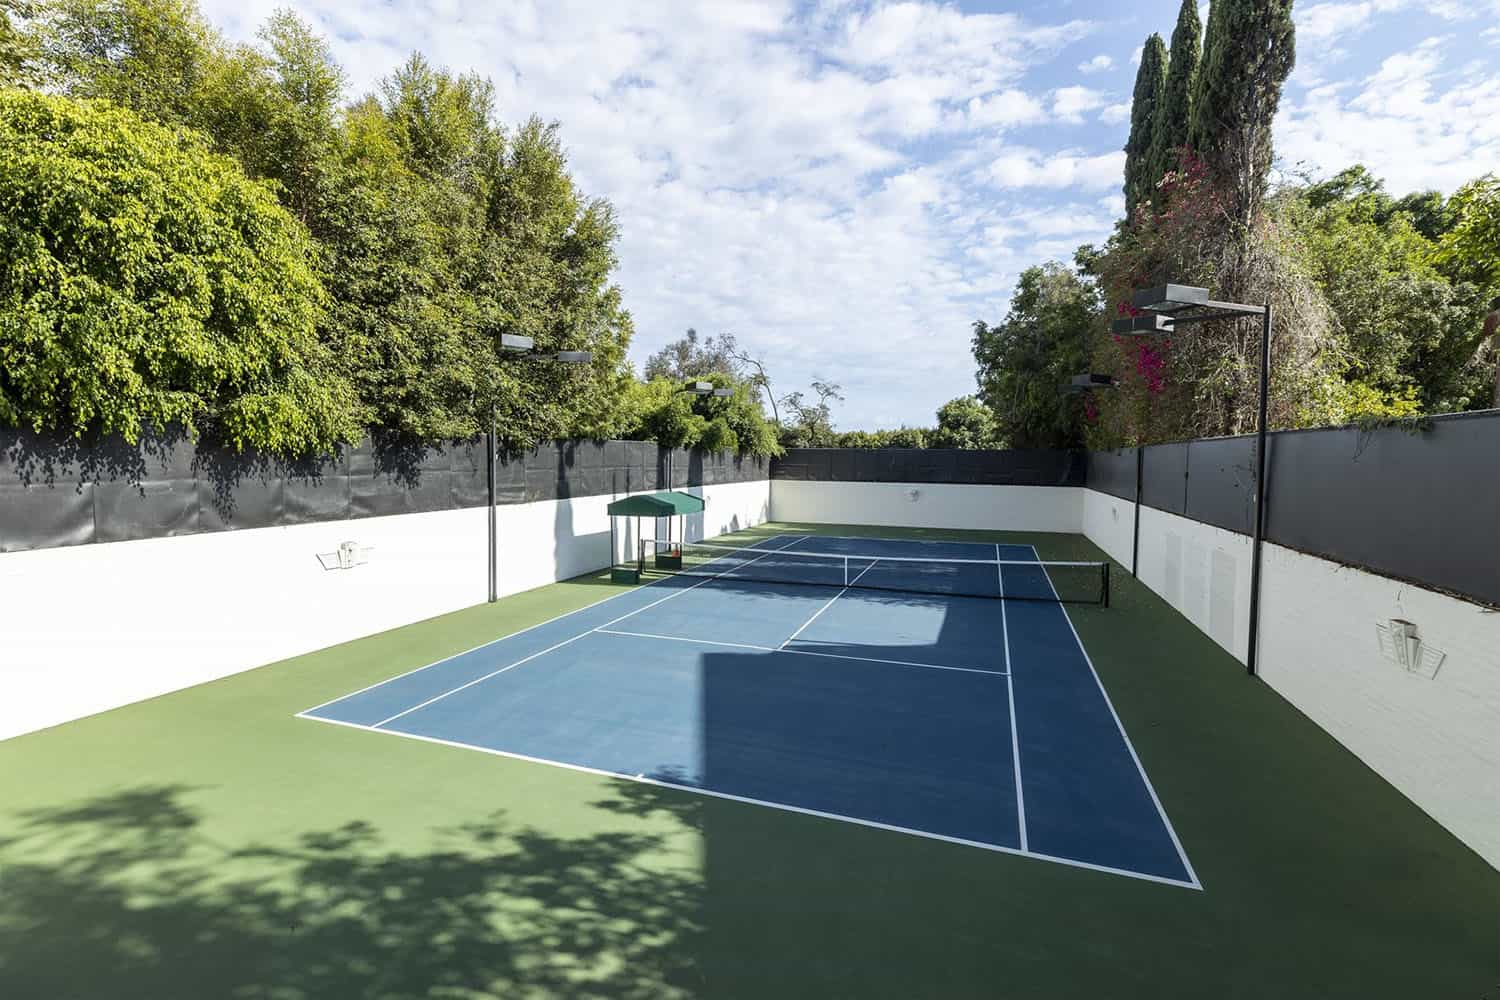 spanish-colonial-style-home-tennis-court